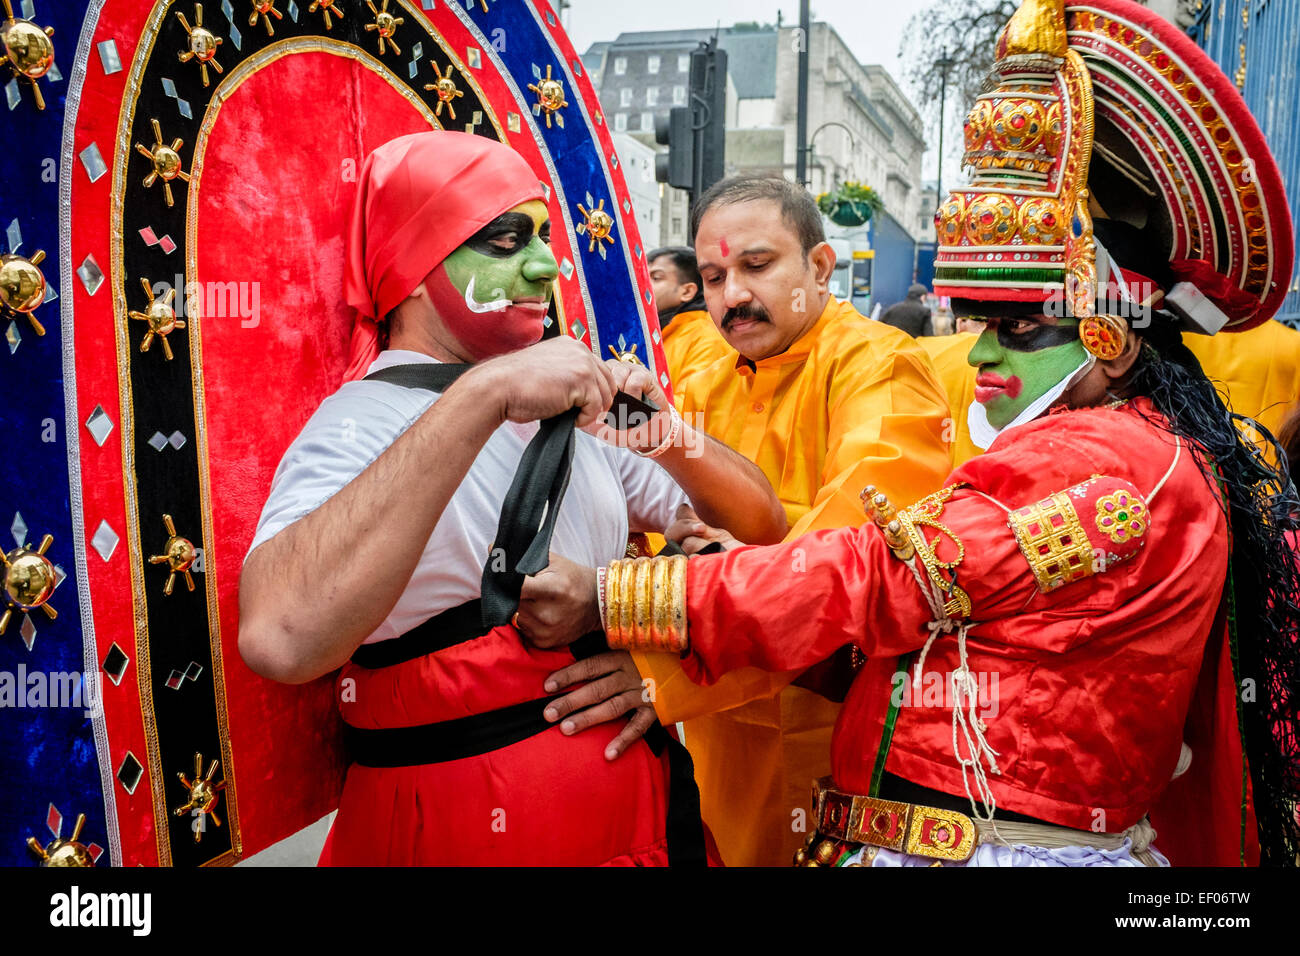 Participants in London 2015 New Year's Day Parade prepare costumes - Stock Image